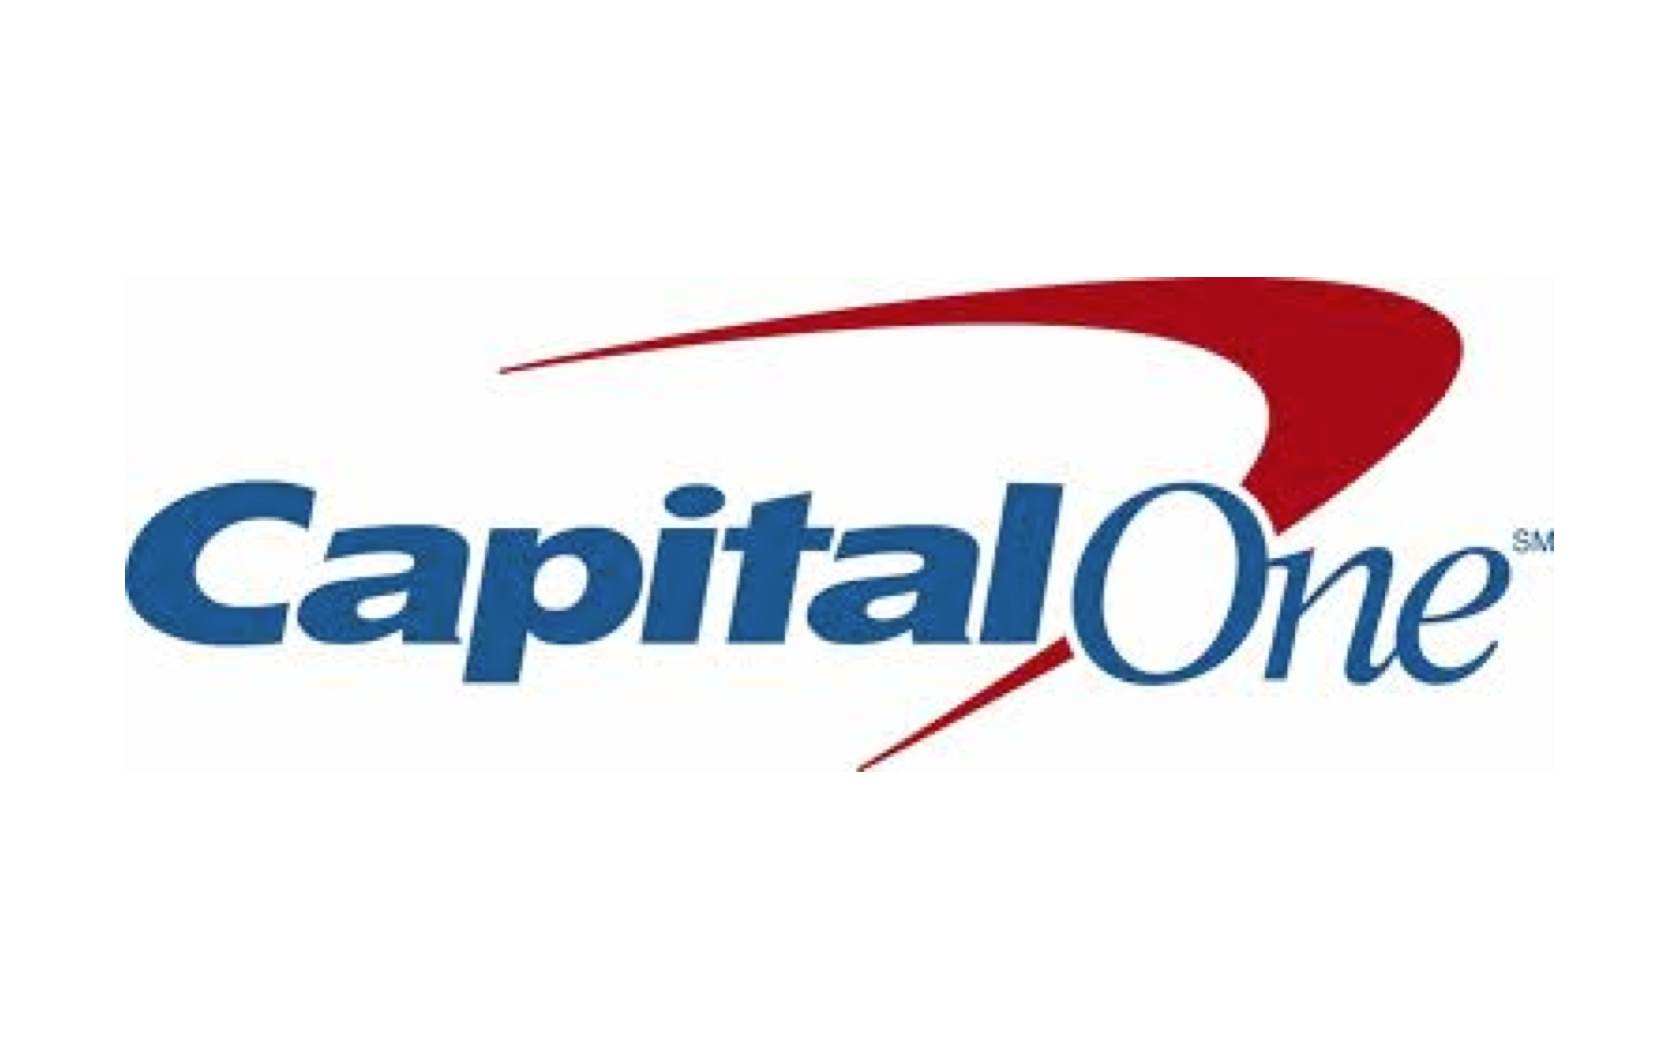 Name Of Logos Around The World >> Capital one logo | Fotolip.com Rich image and wallpaper